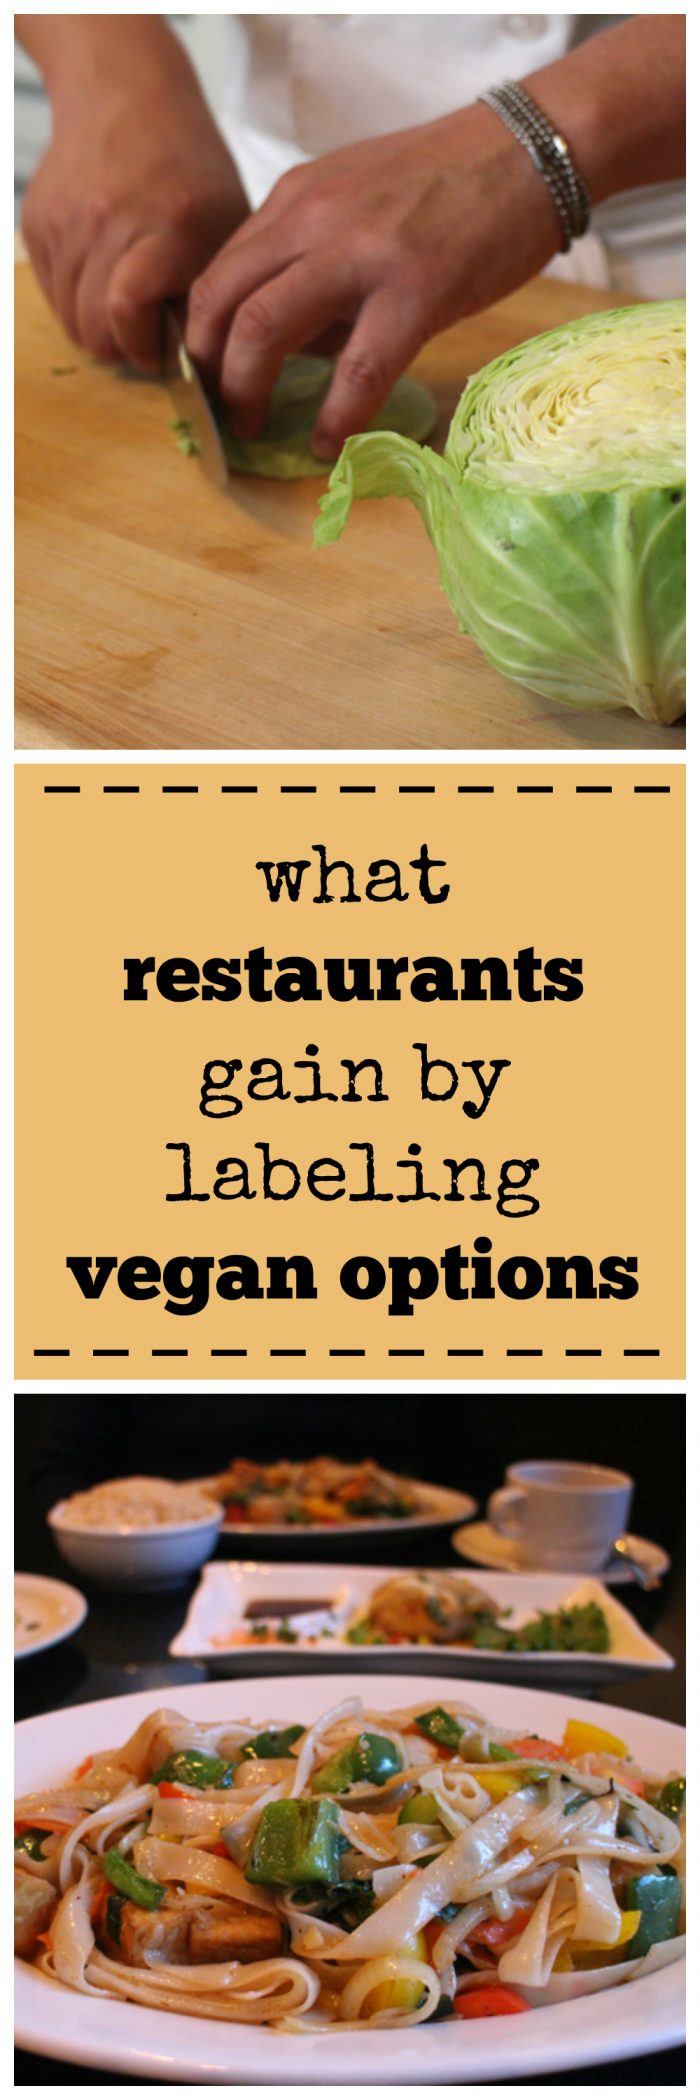 What do restaurants gain by labeling vegan options? | cadryskitchen.com